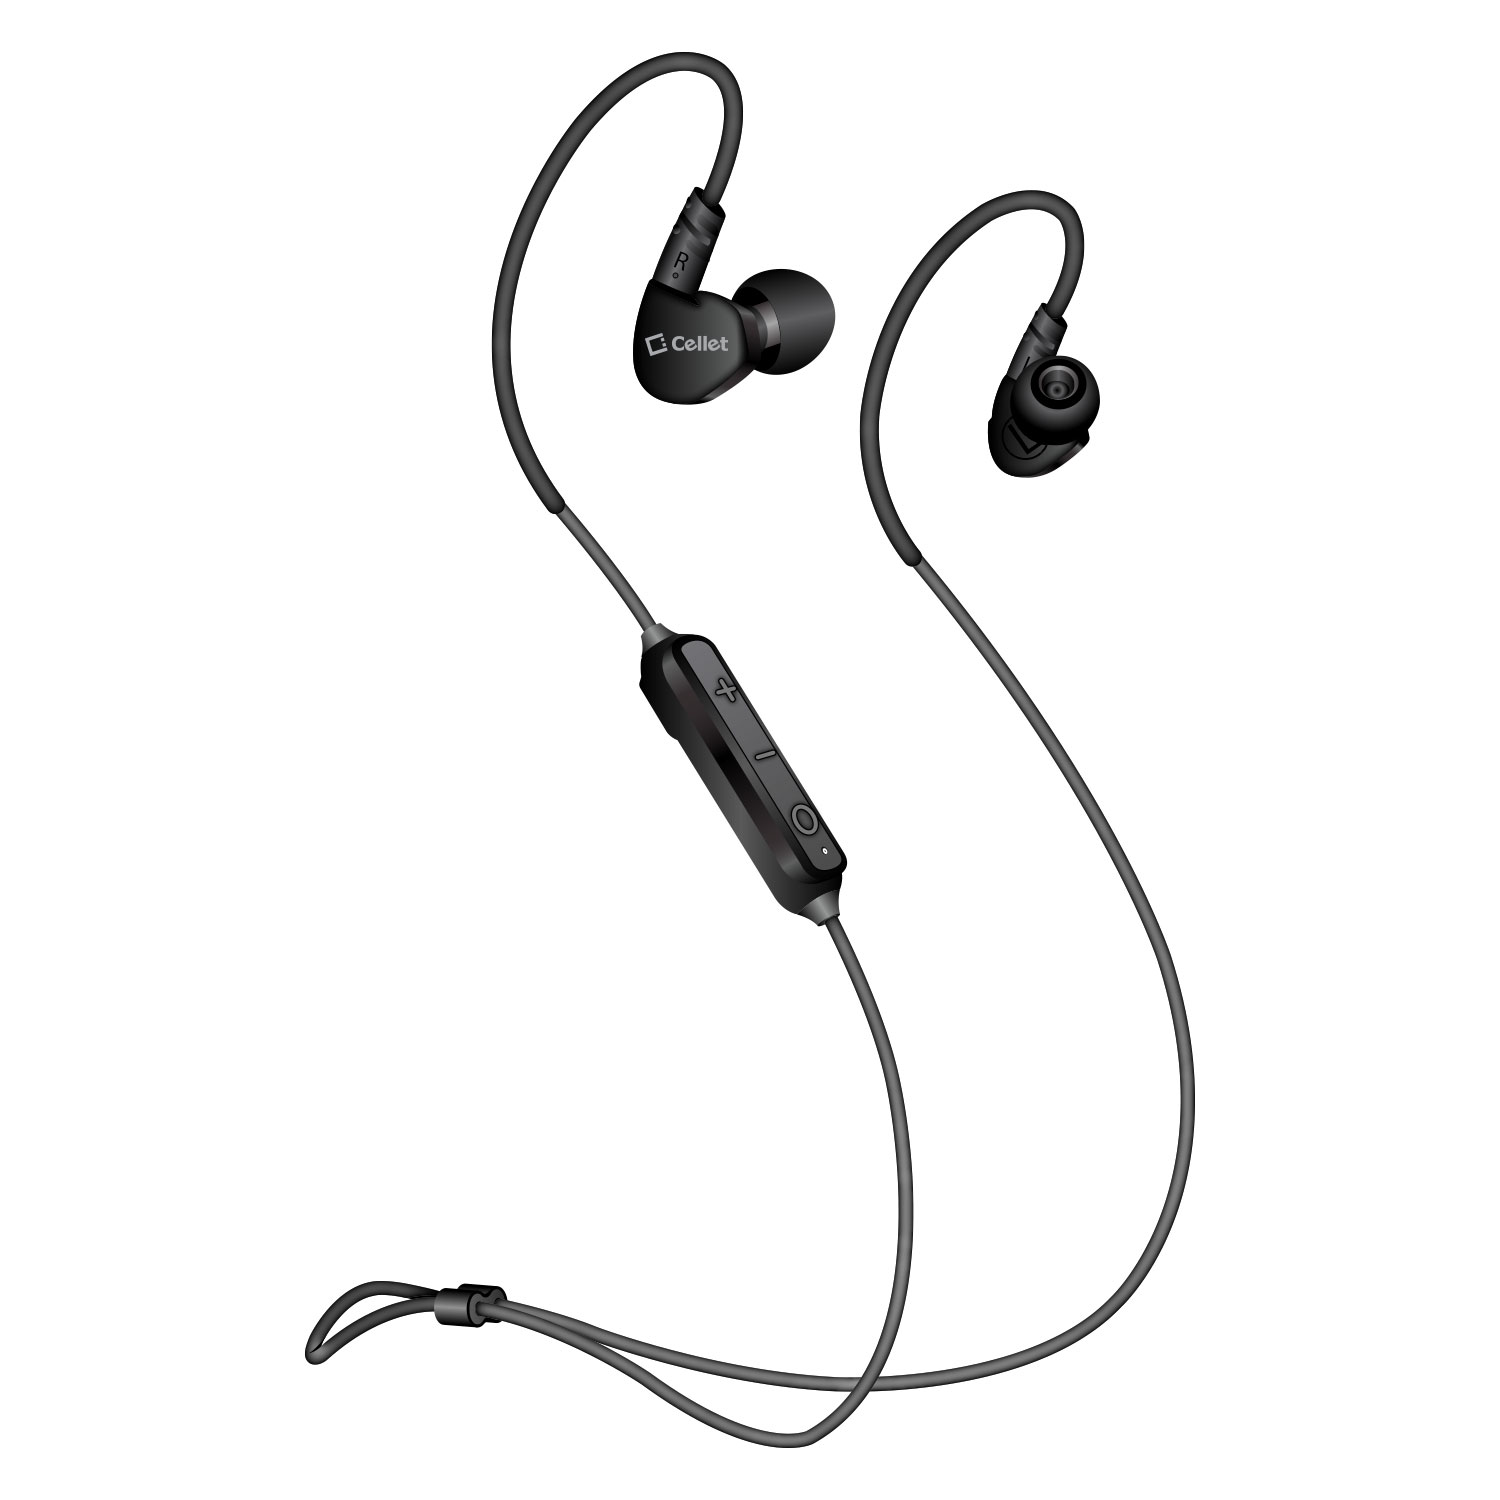 Alcatel Go Flip Bluetooth V5.0 Stereo Earphones Sport Headset Black